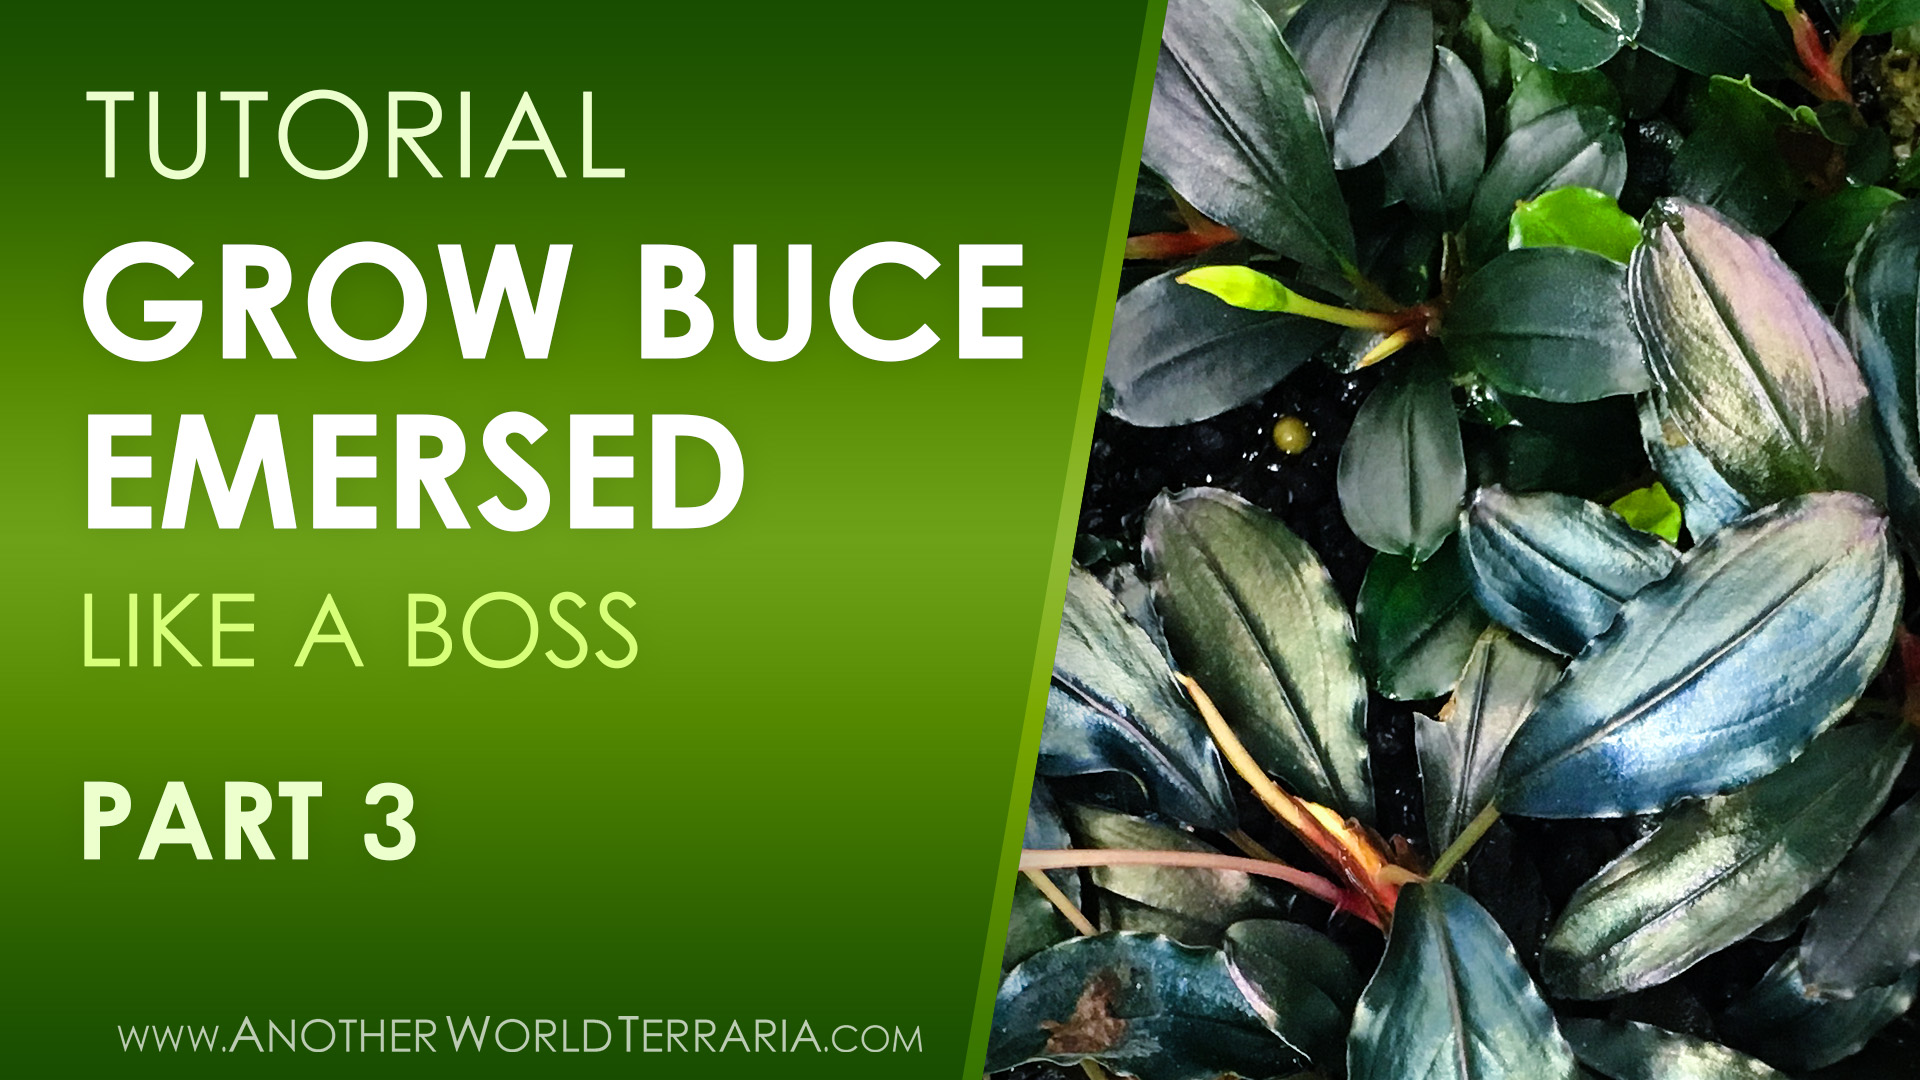 How to Grow Buce Emersed (Like a Boss) - Part 3